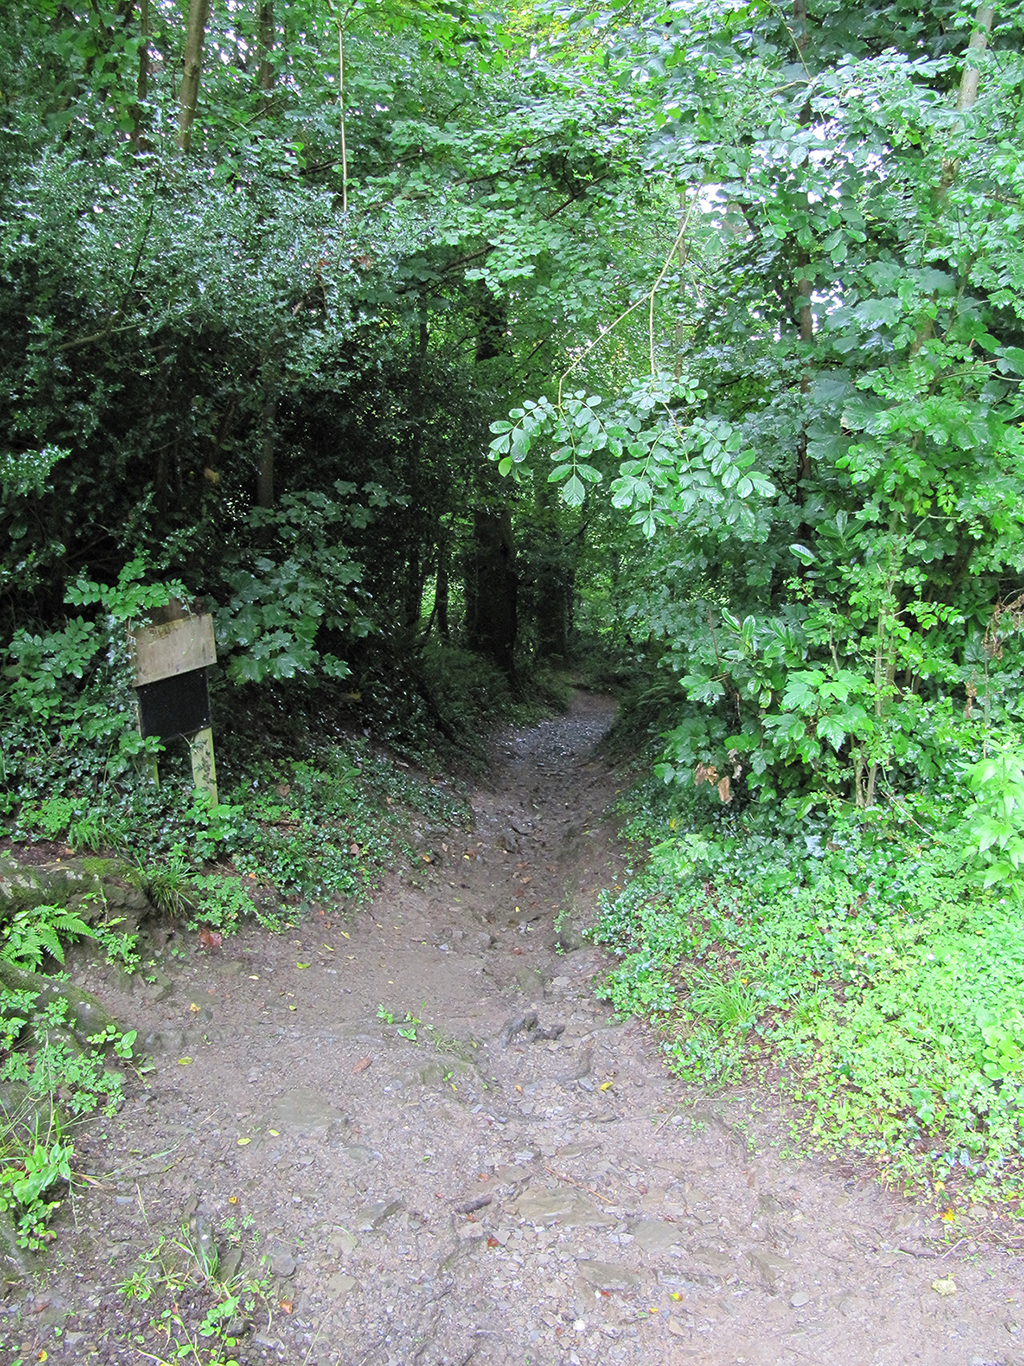 Footpath leading down into the valley. (looking down)